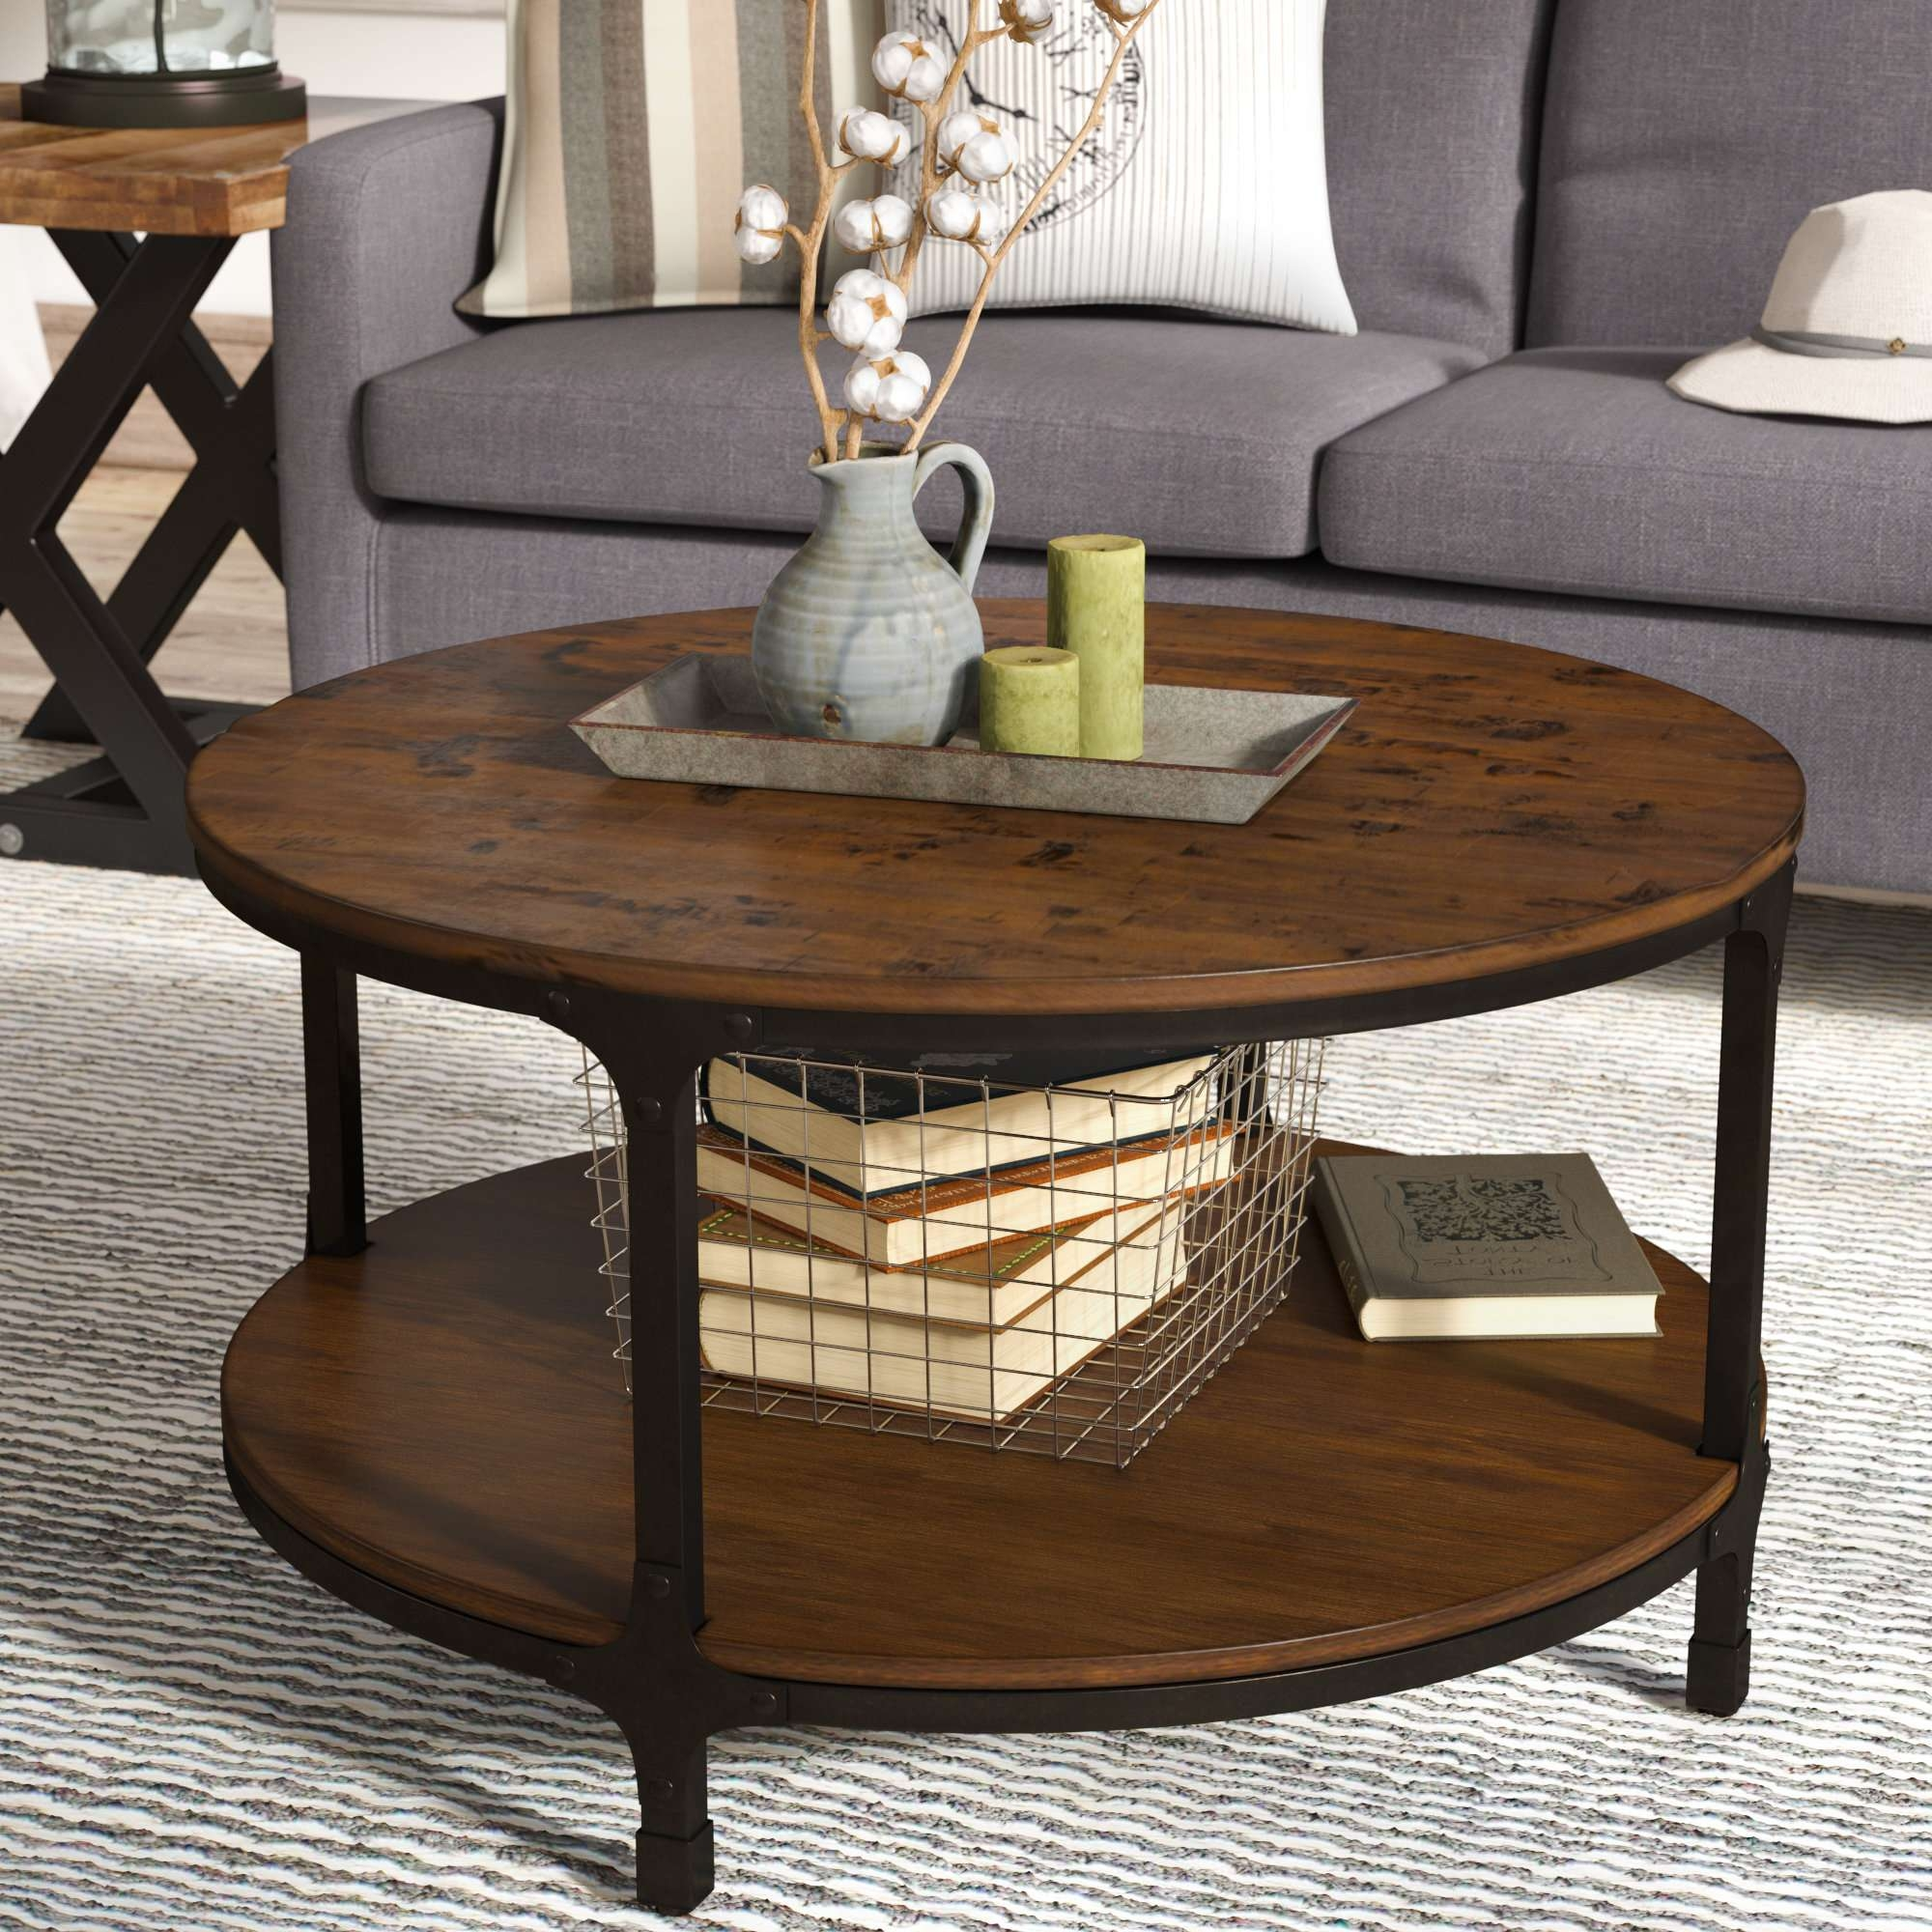 Wayfair Intended For Best And Newest Coffee Tables Solid Wood (View 18 of 20)